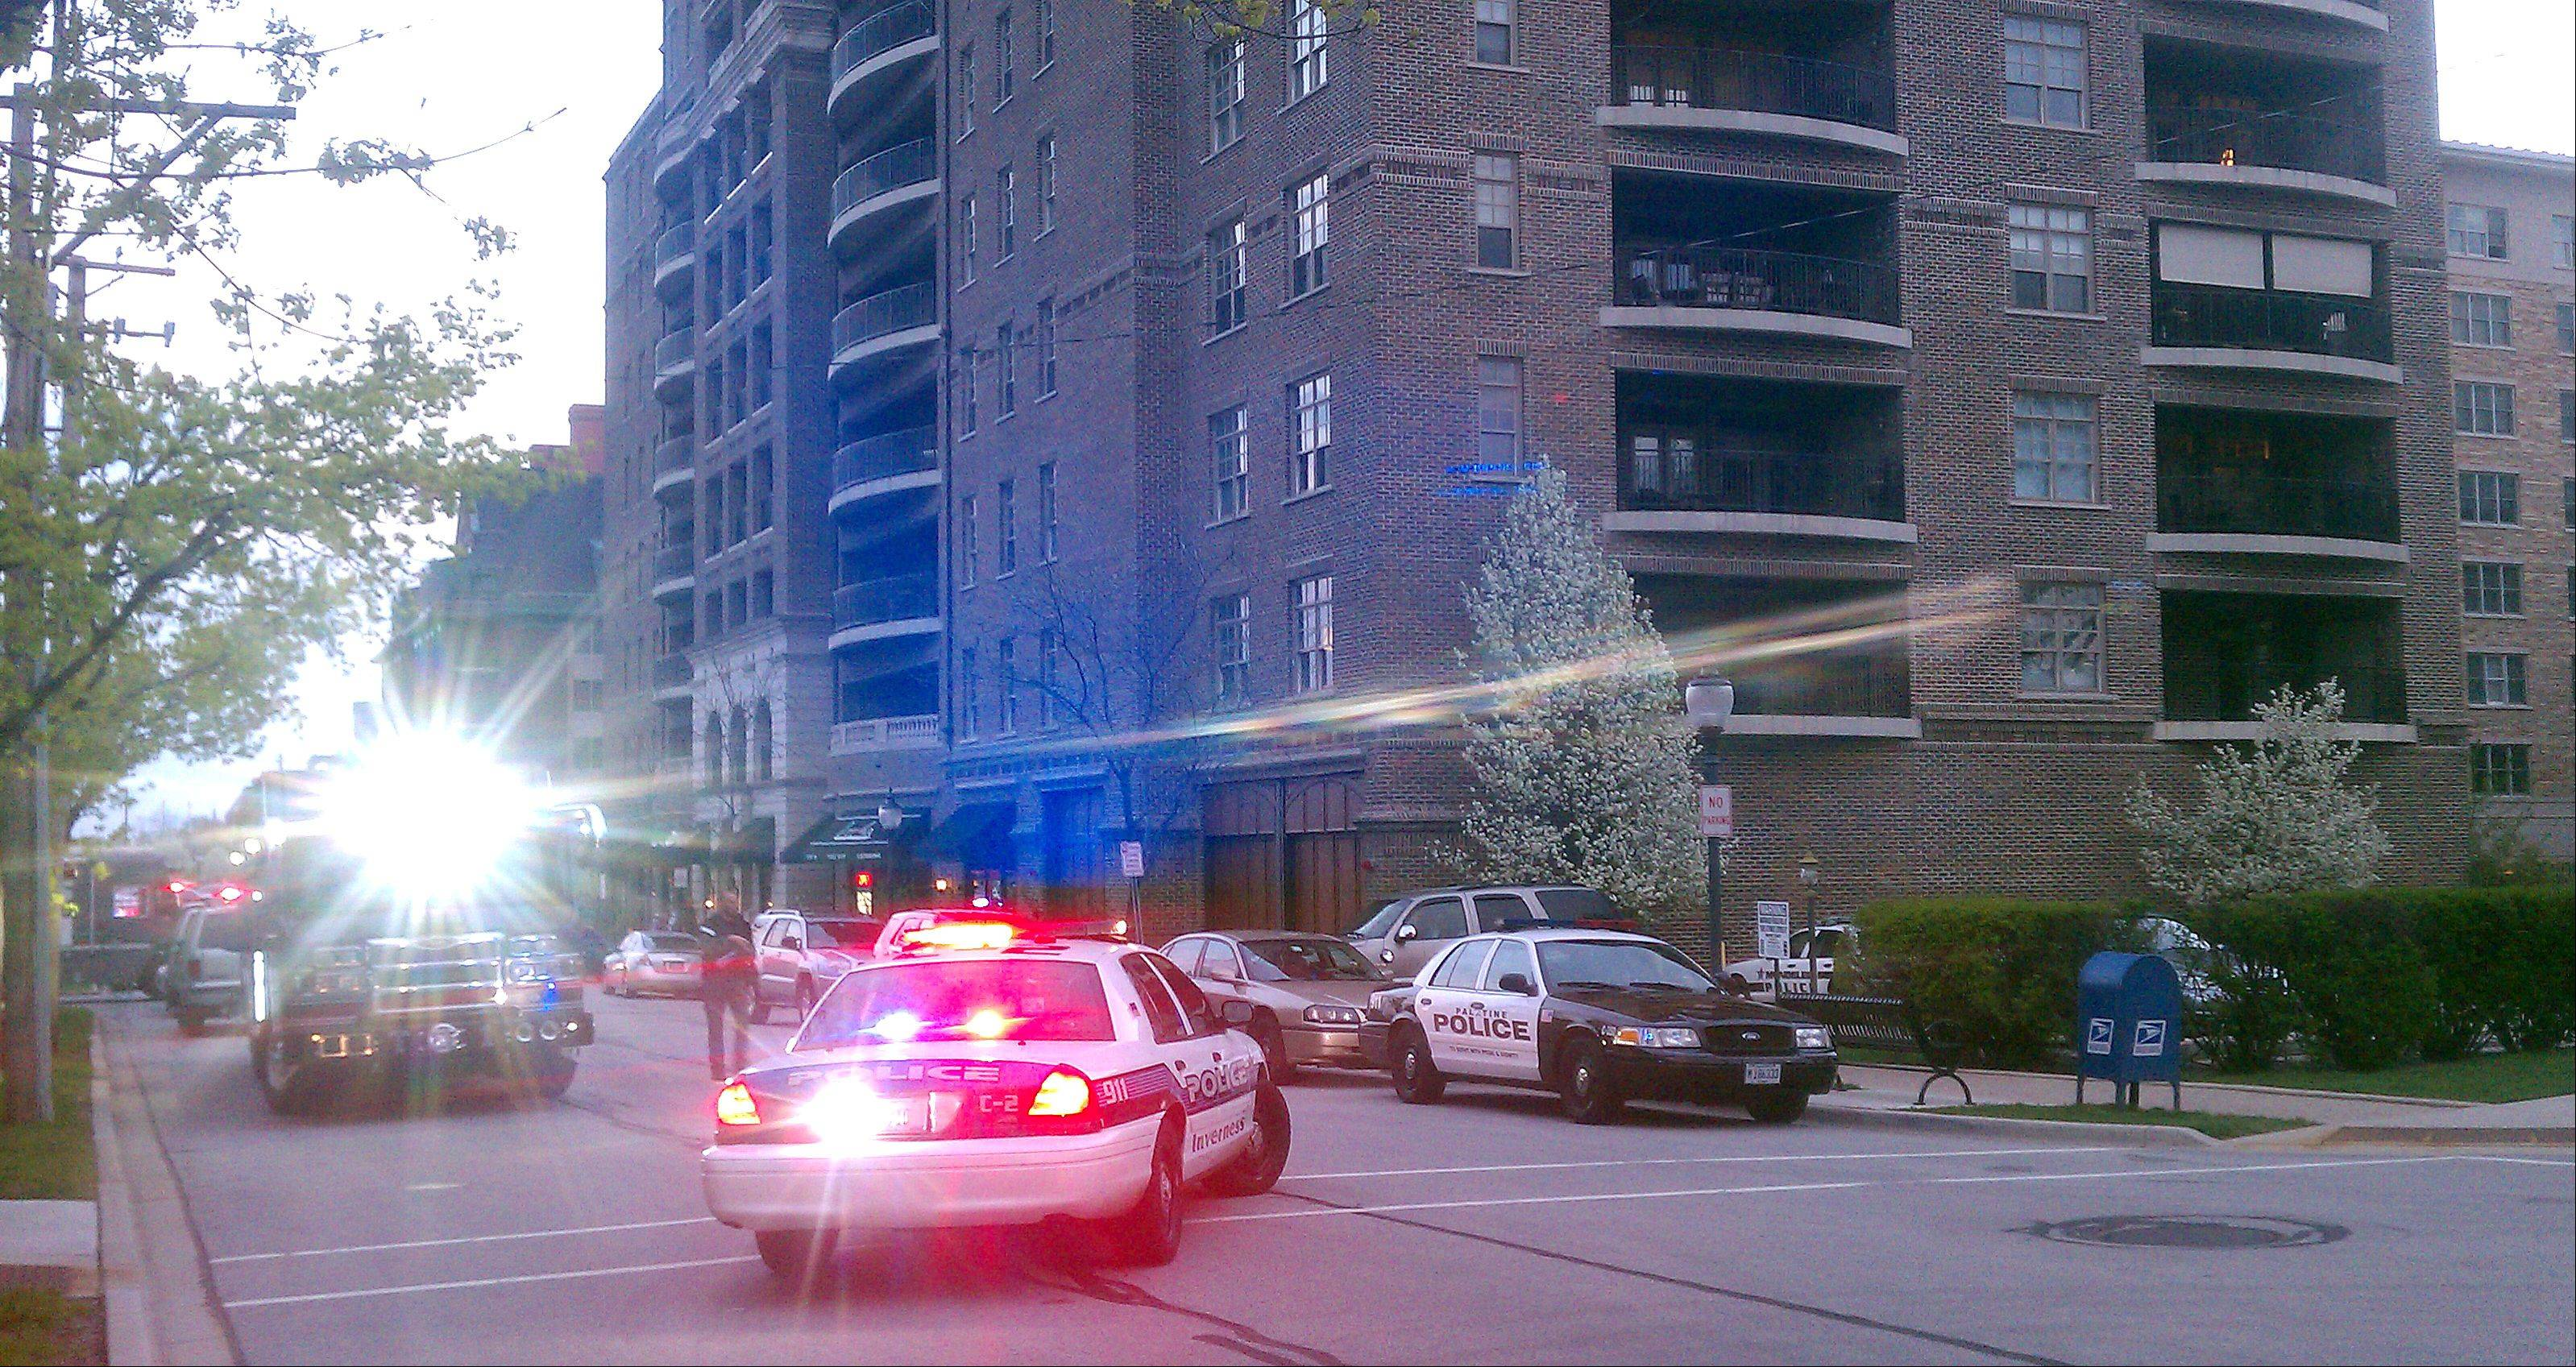 Arlington Heights police have deployed a SWAT team and dozens of police officers near Campbell and Wing streets in downtown Arlington Heights as of about 6:30 p.m. Saturday. A portion of the downtown, including Wing Street, was blocked off.